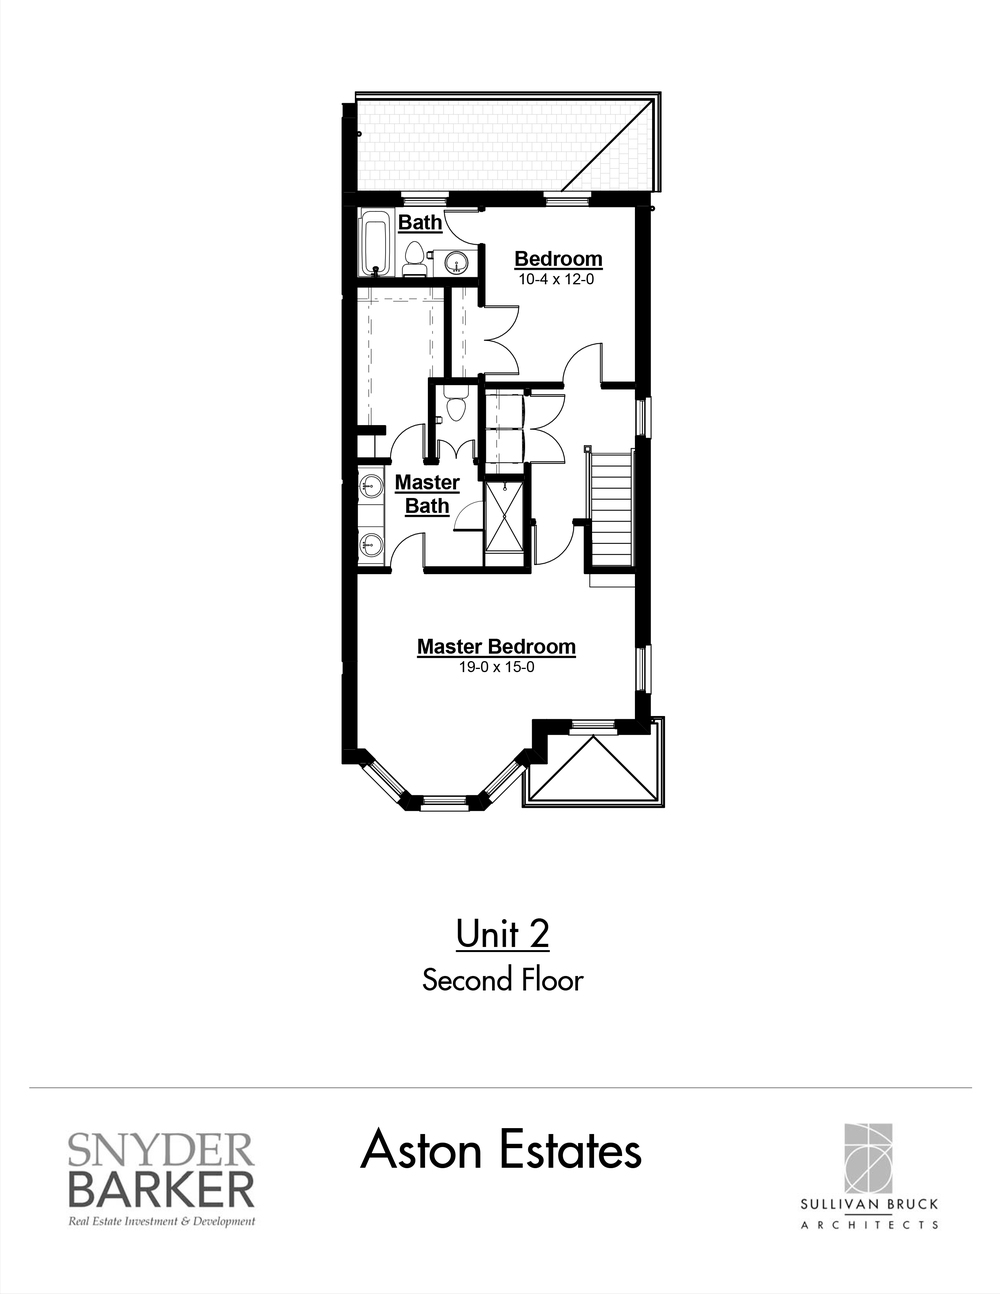 Aston_Estates_Unit_2_Second_Floor.jpg